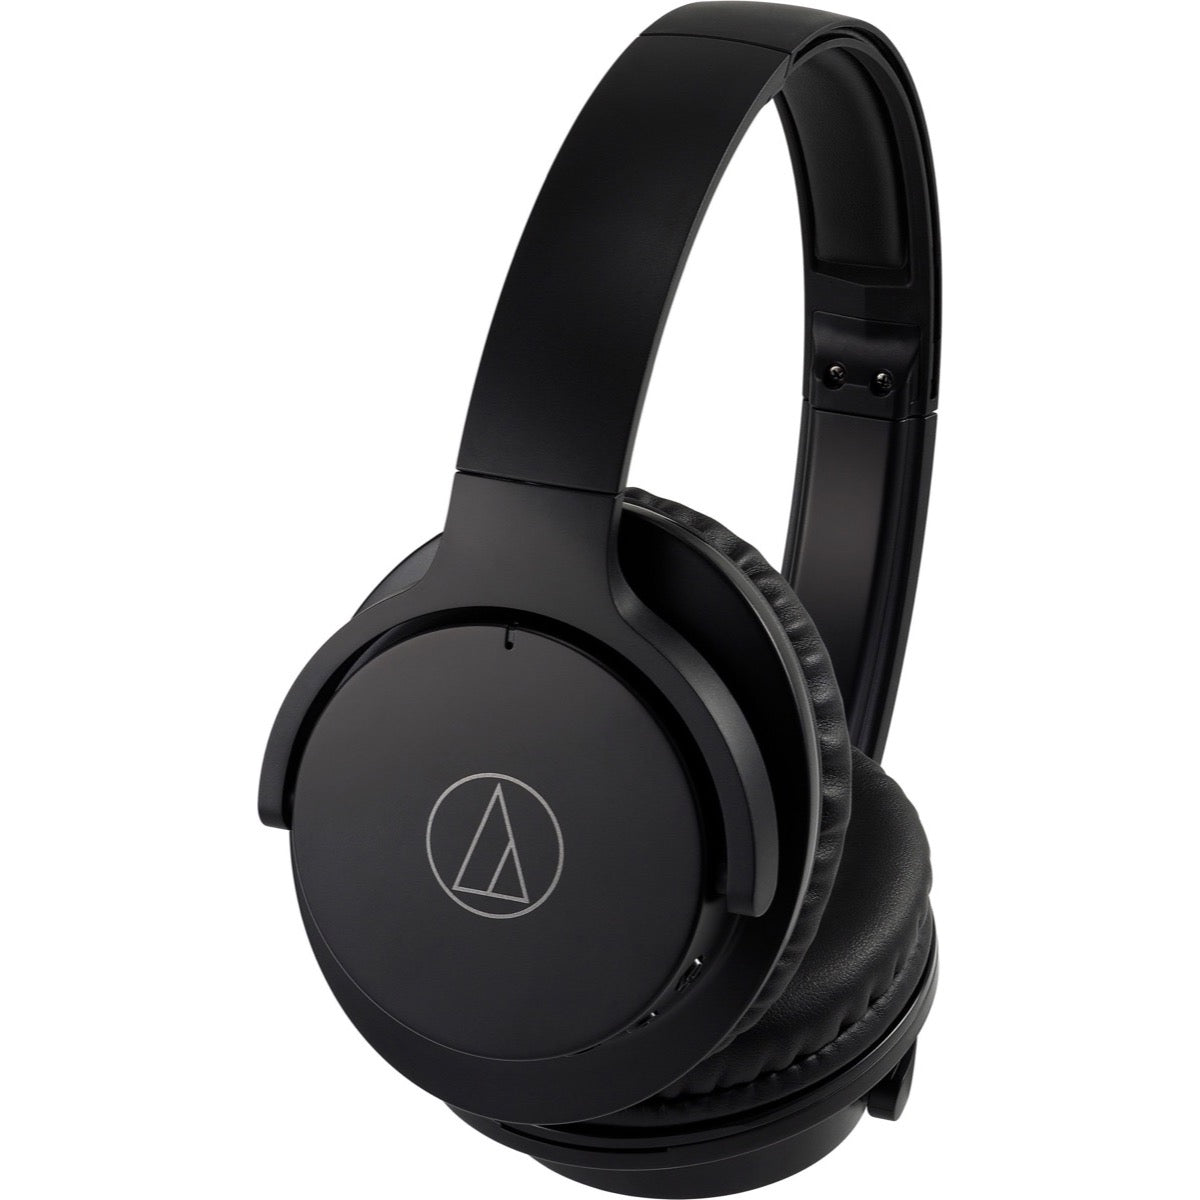 Audio-Technica ATH-ANC500BT Noise-Cancelling Headphones, Black